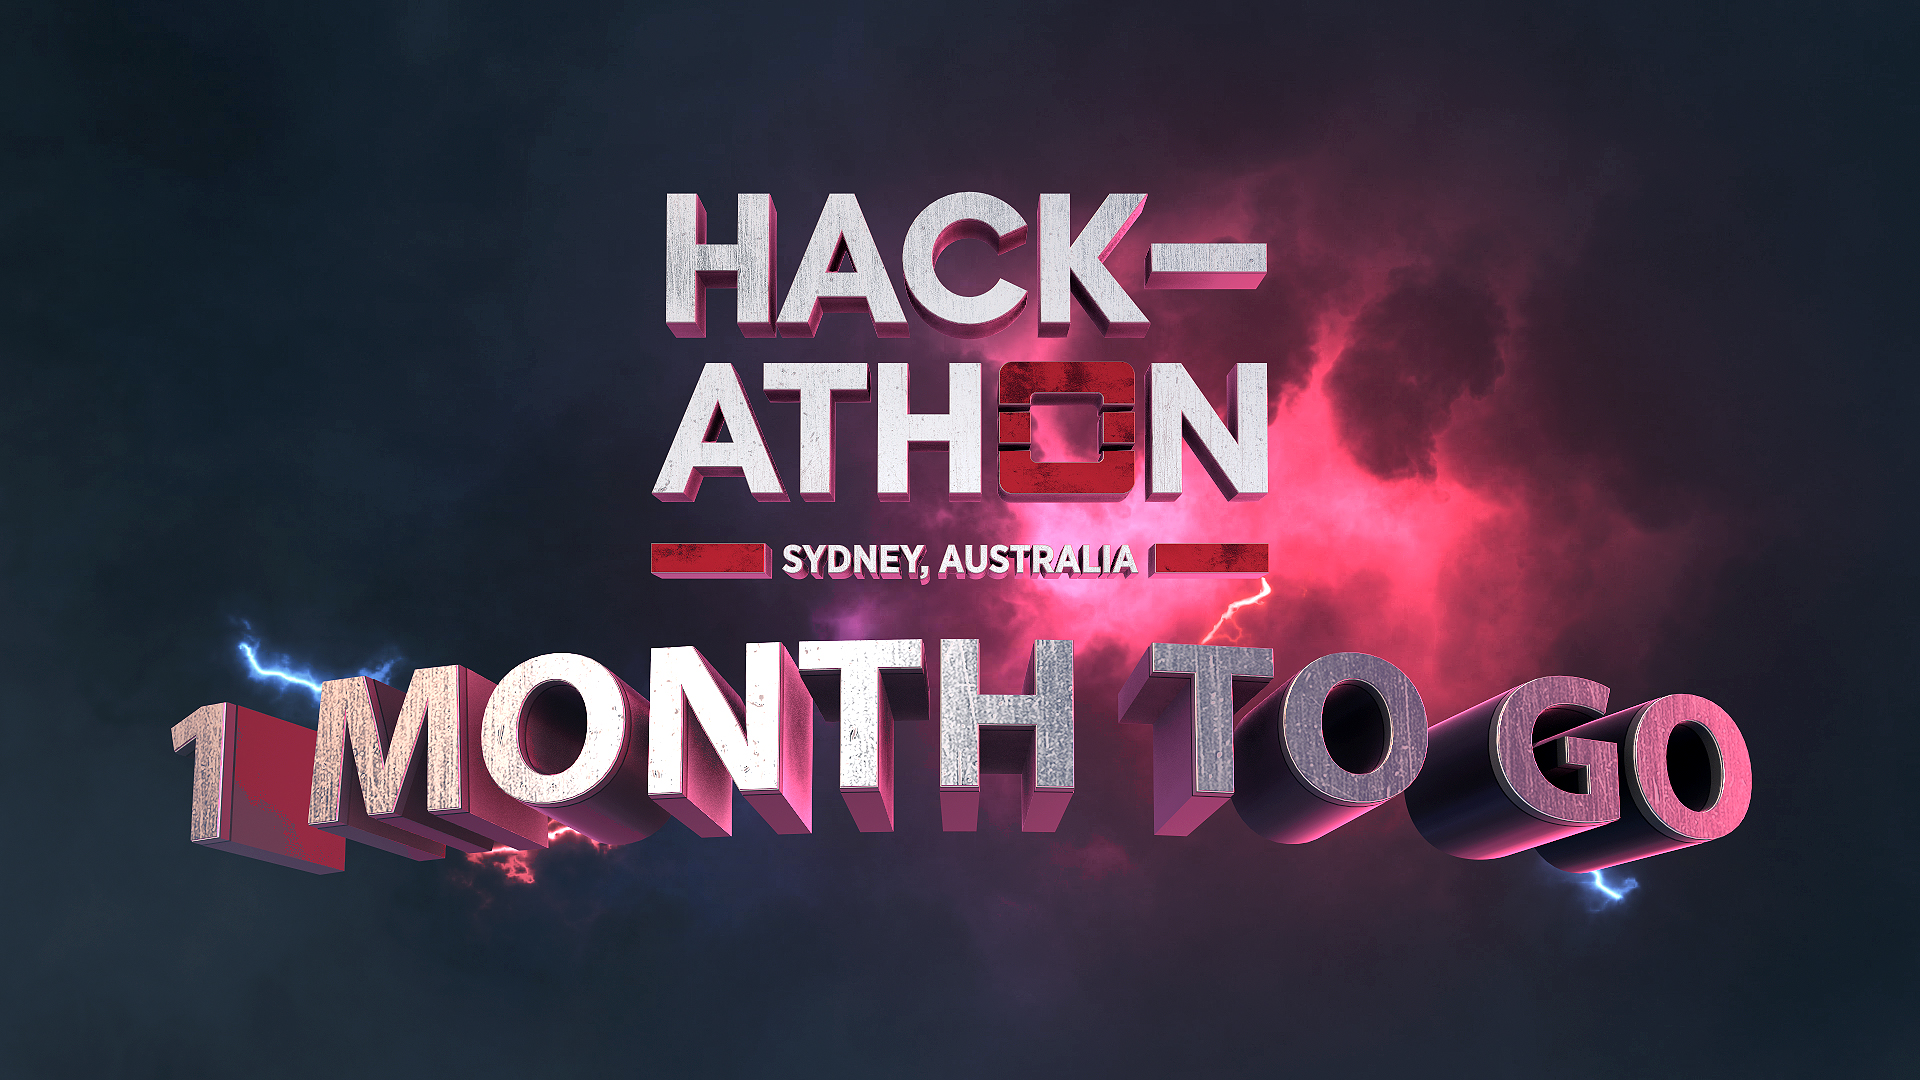 OpenStack Application Hackathon - 1 month to go